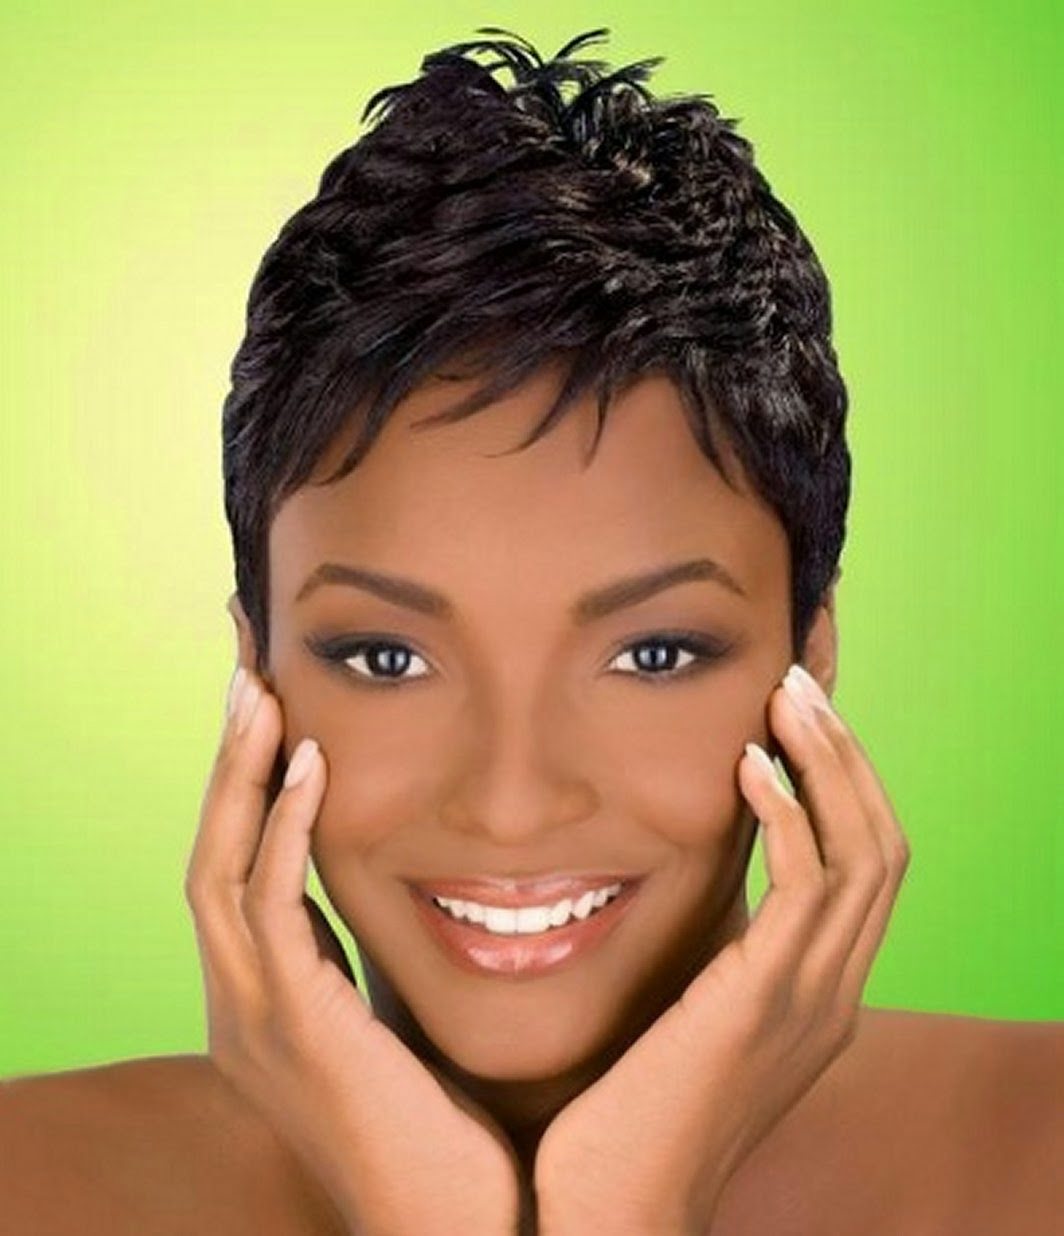 Marvelous Good Short Hairstyles For African American Women Short Hairstyles For Black Women Fulllsitofus